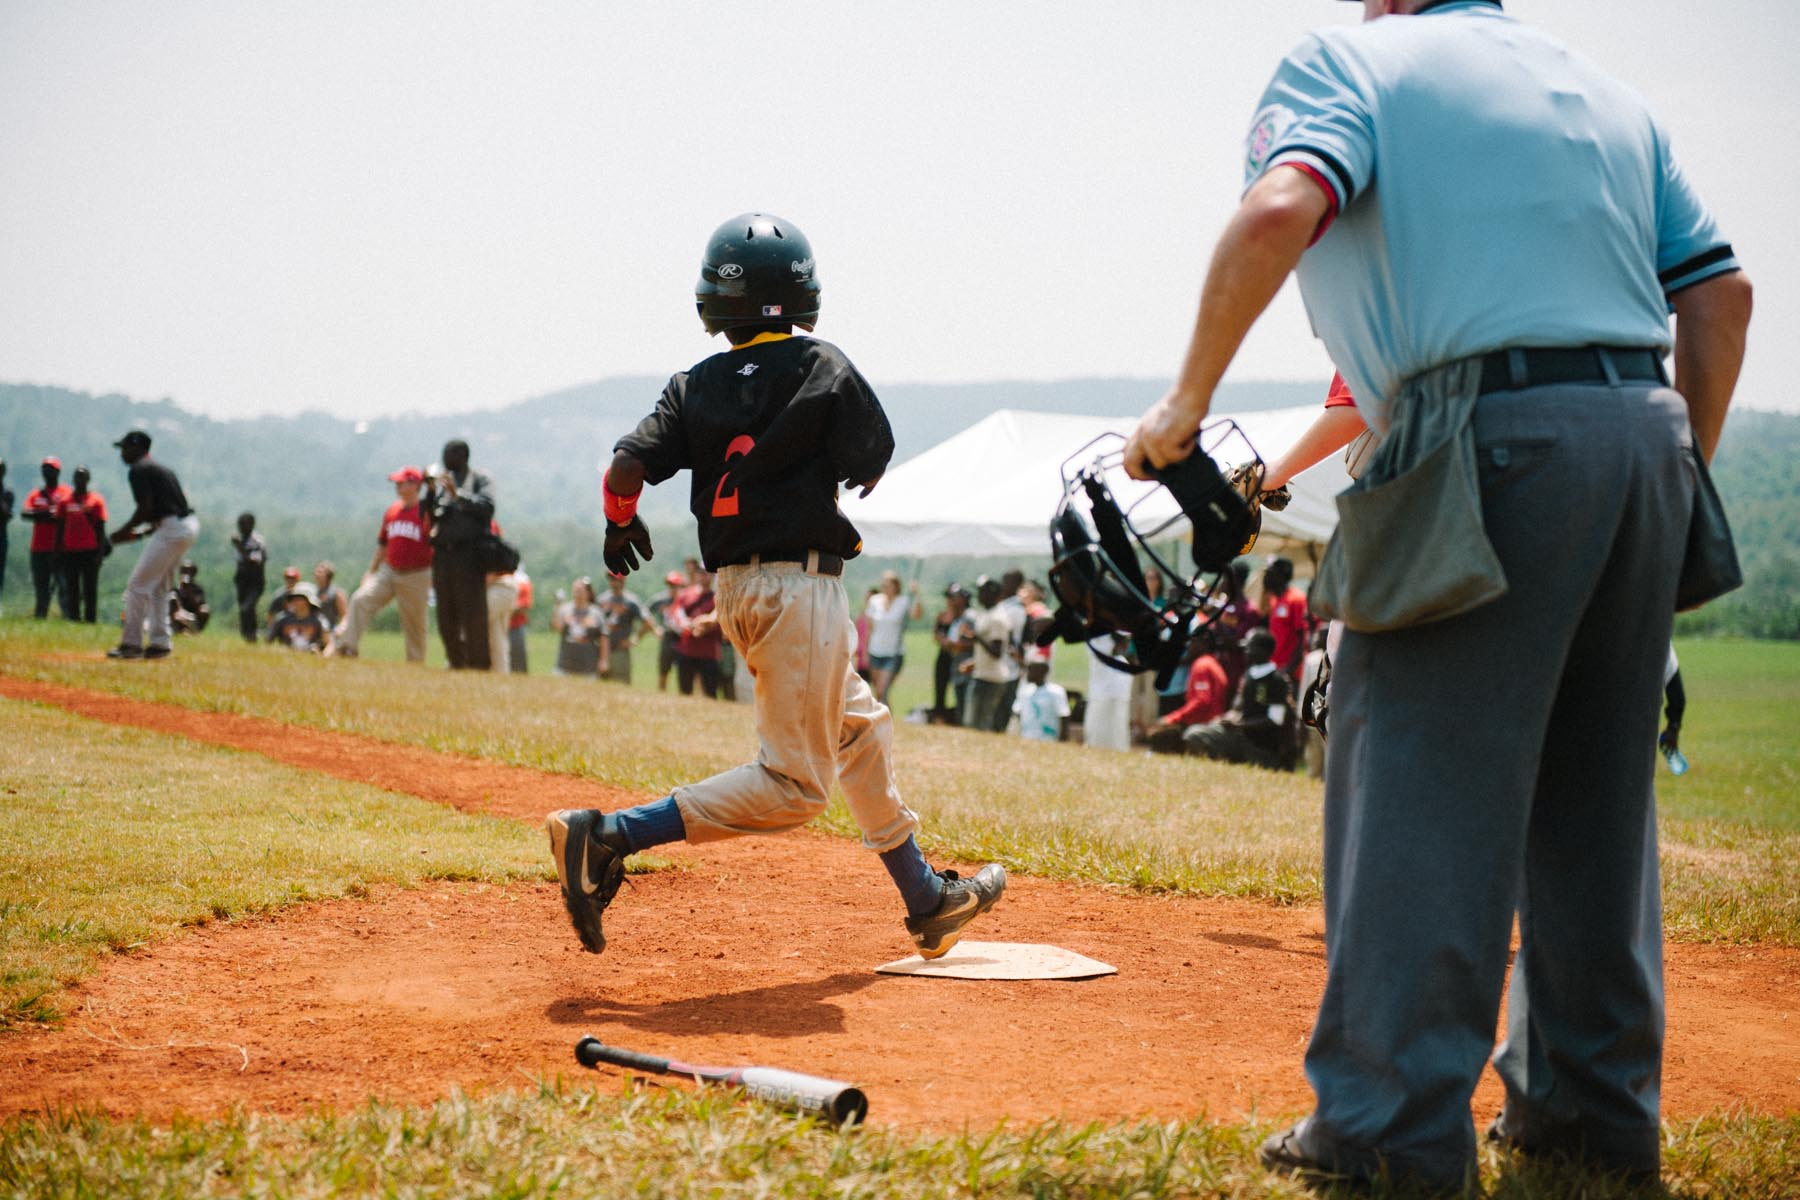 HKP-UgandaBaseball-Day4-0739.jpg